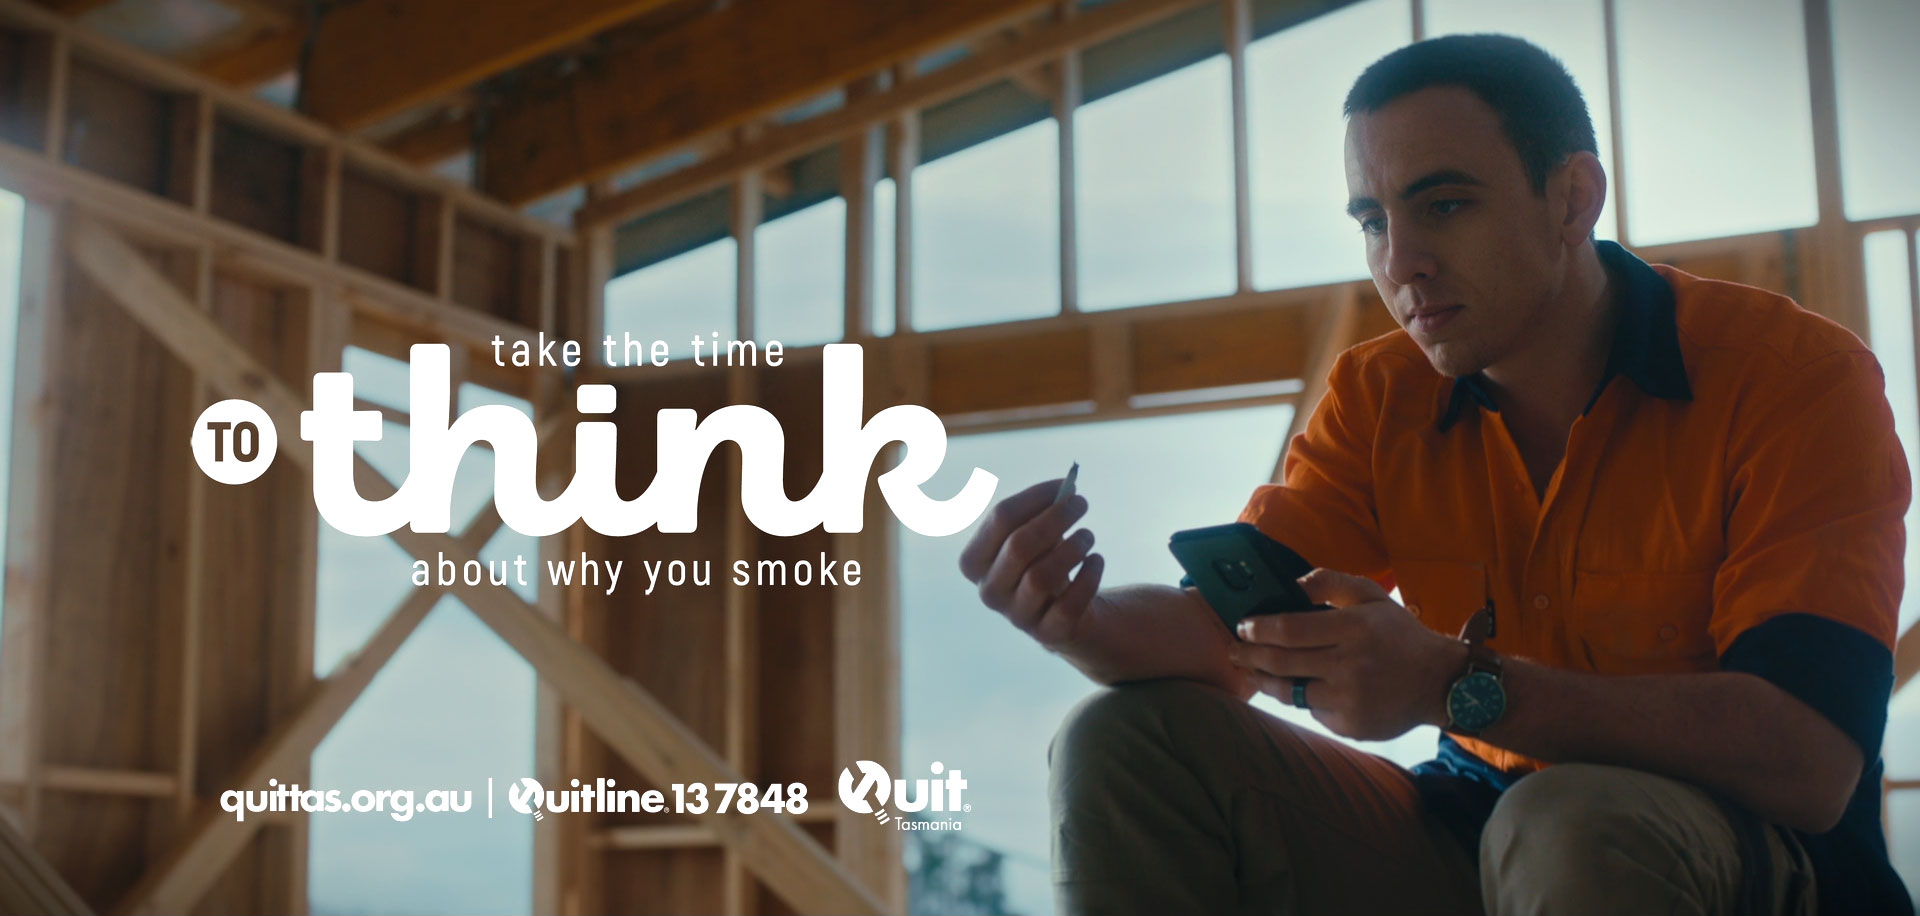 Take the time to think about why you smoke